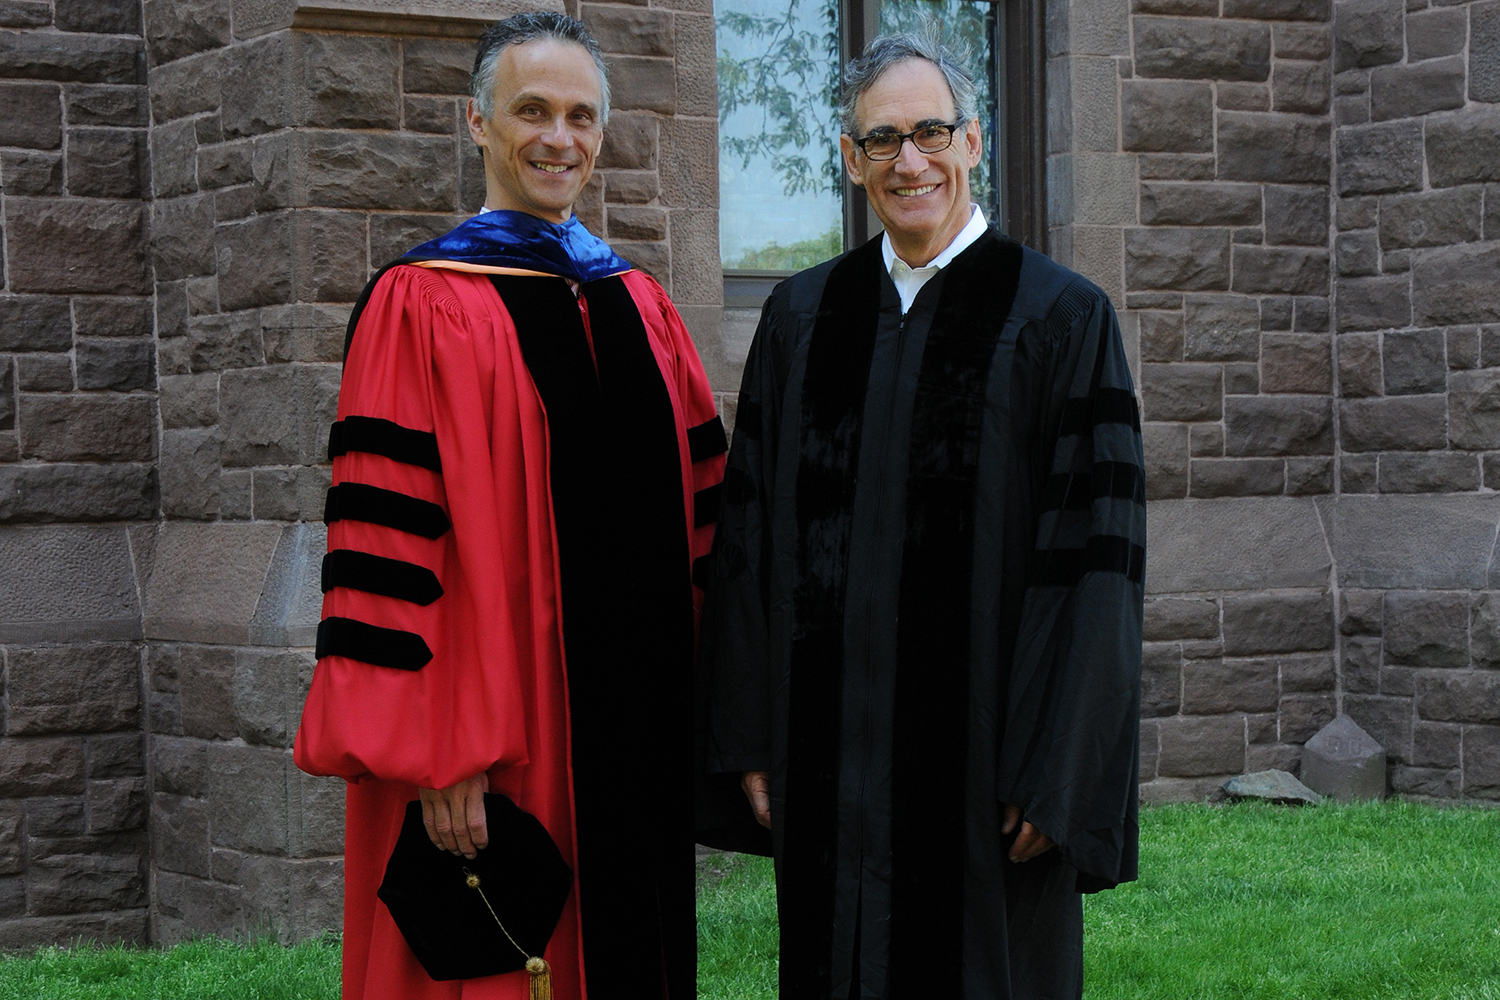 President Michael Roth awarded Alan Dachs '70, Hon '07, P'98 with the Raymond E. Baldwin Medal on May 24. (Photo by John Van Vlack)